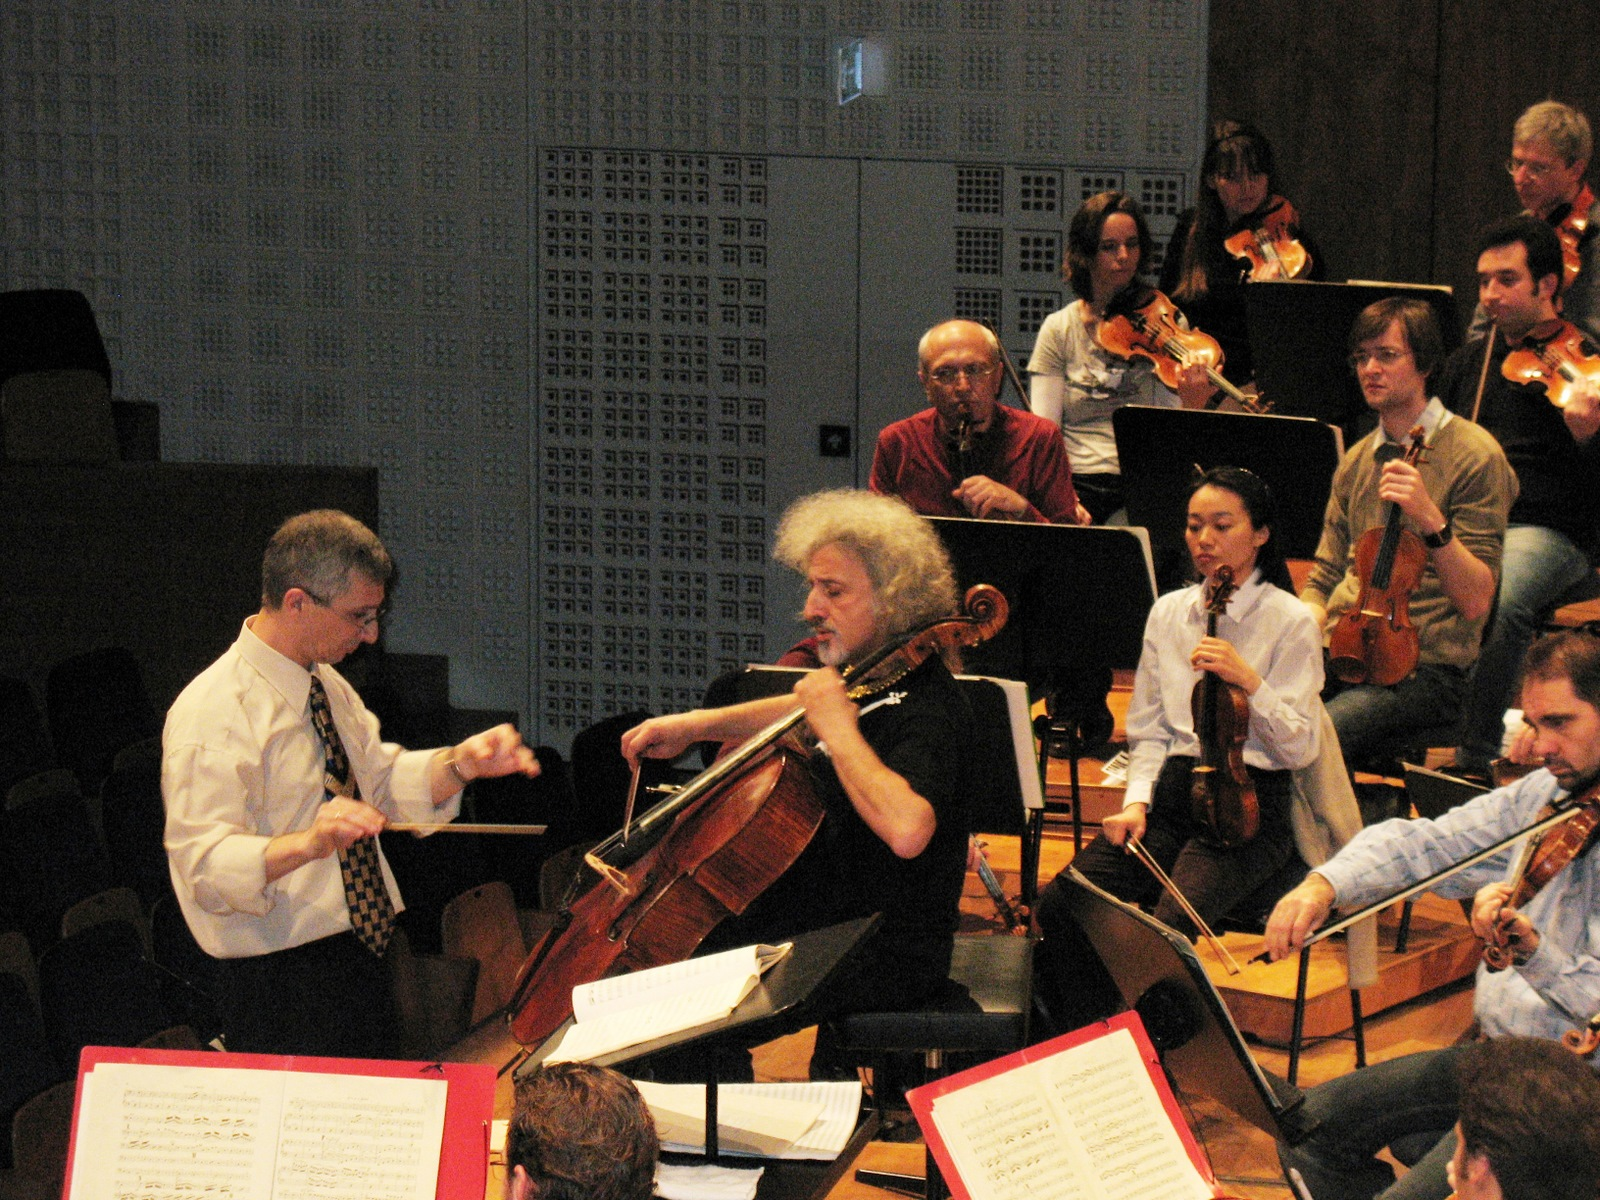 rehearsal of Cello Concerto